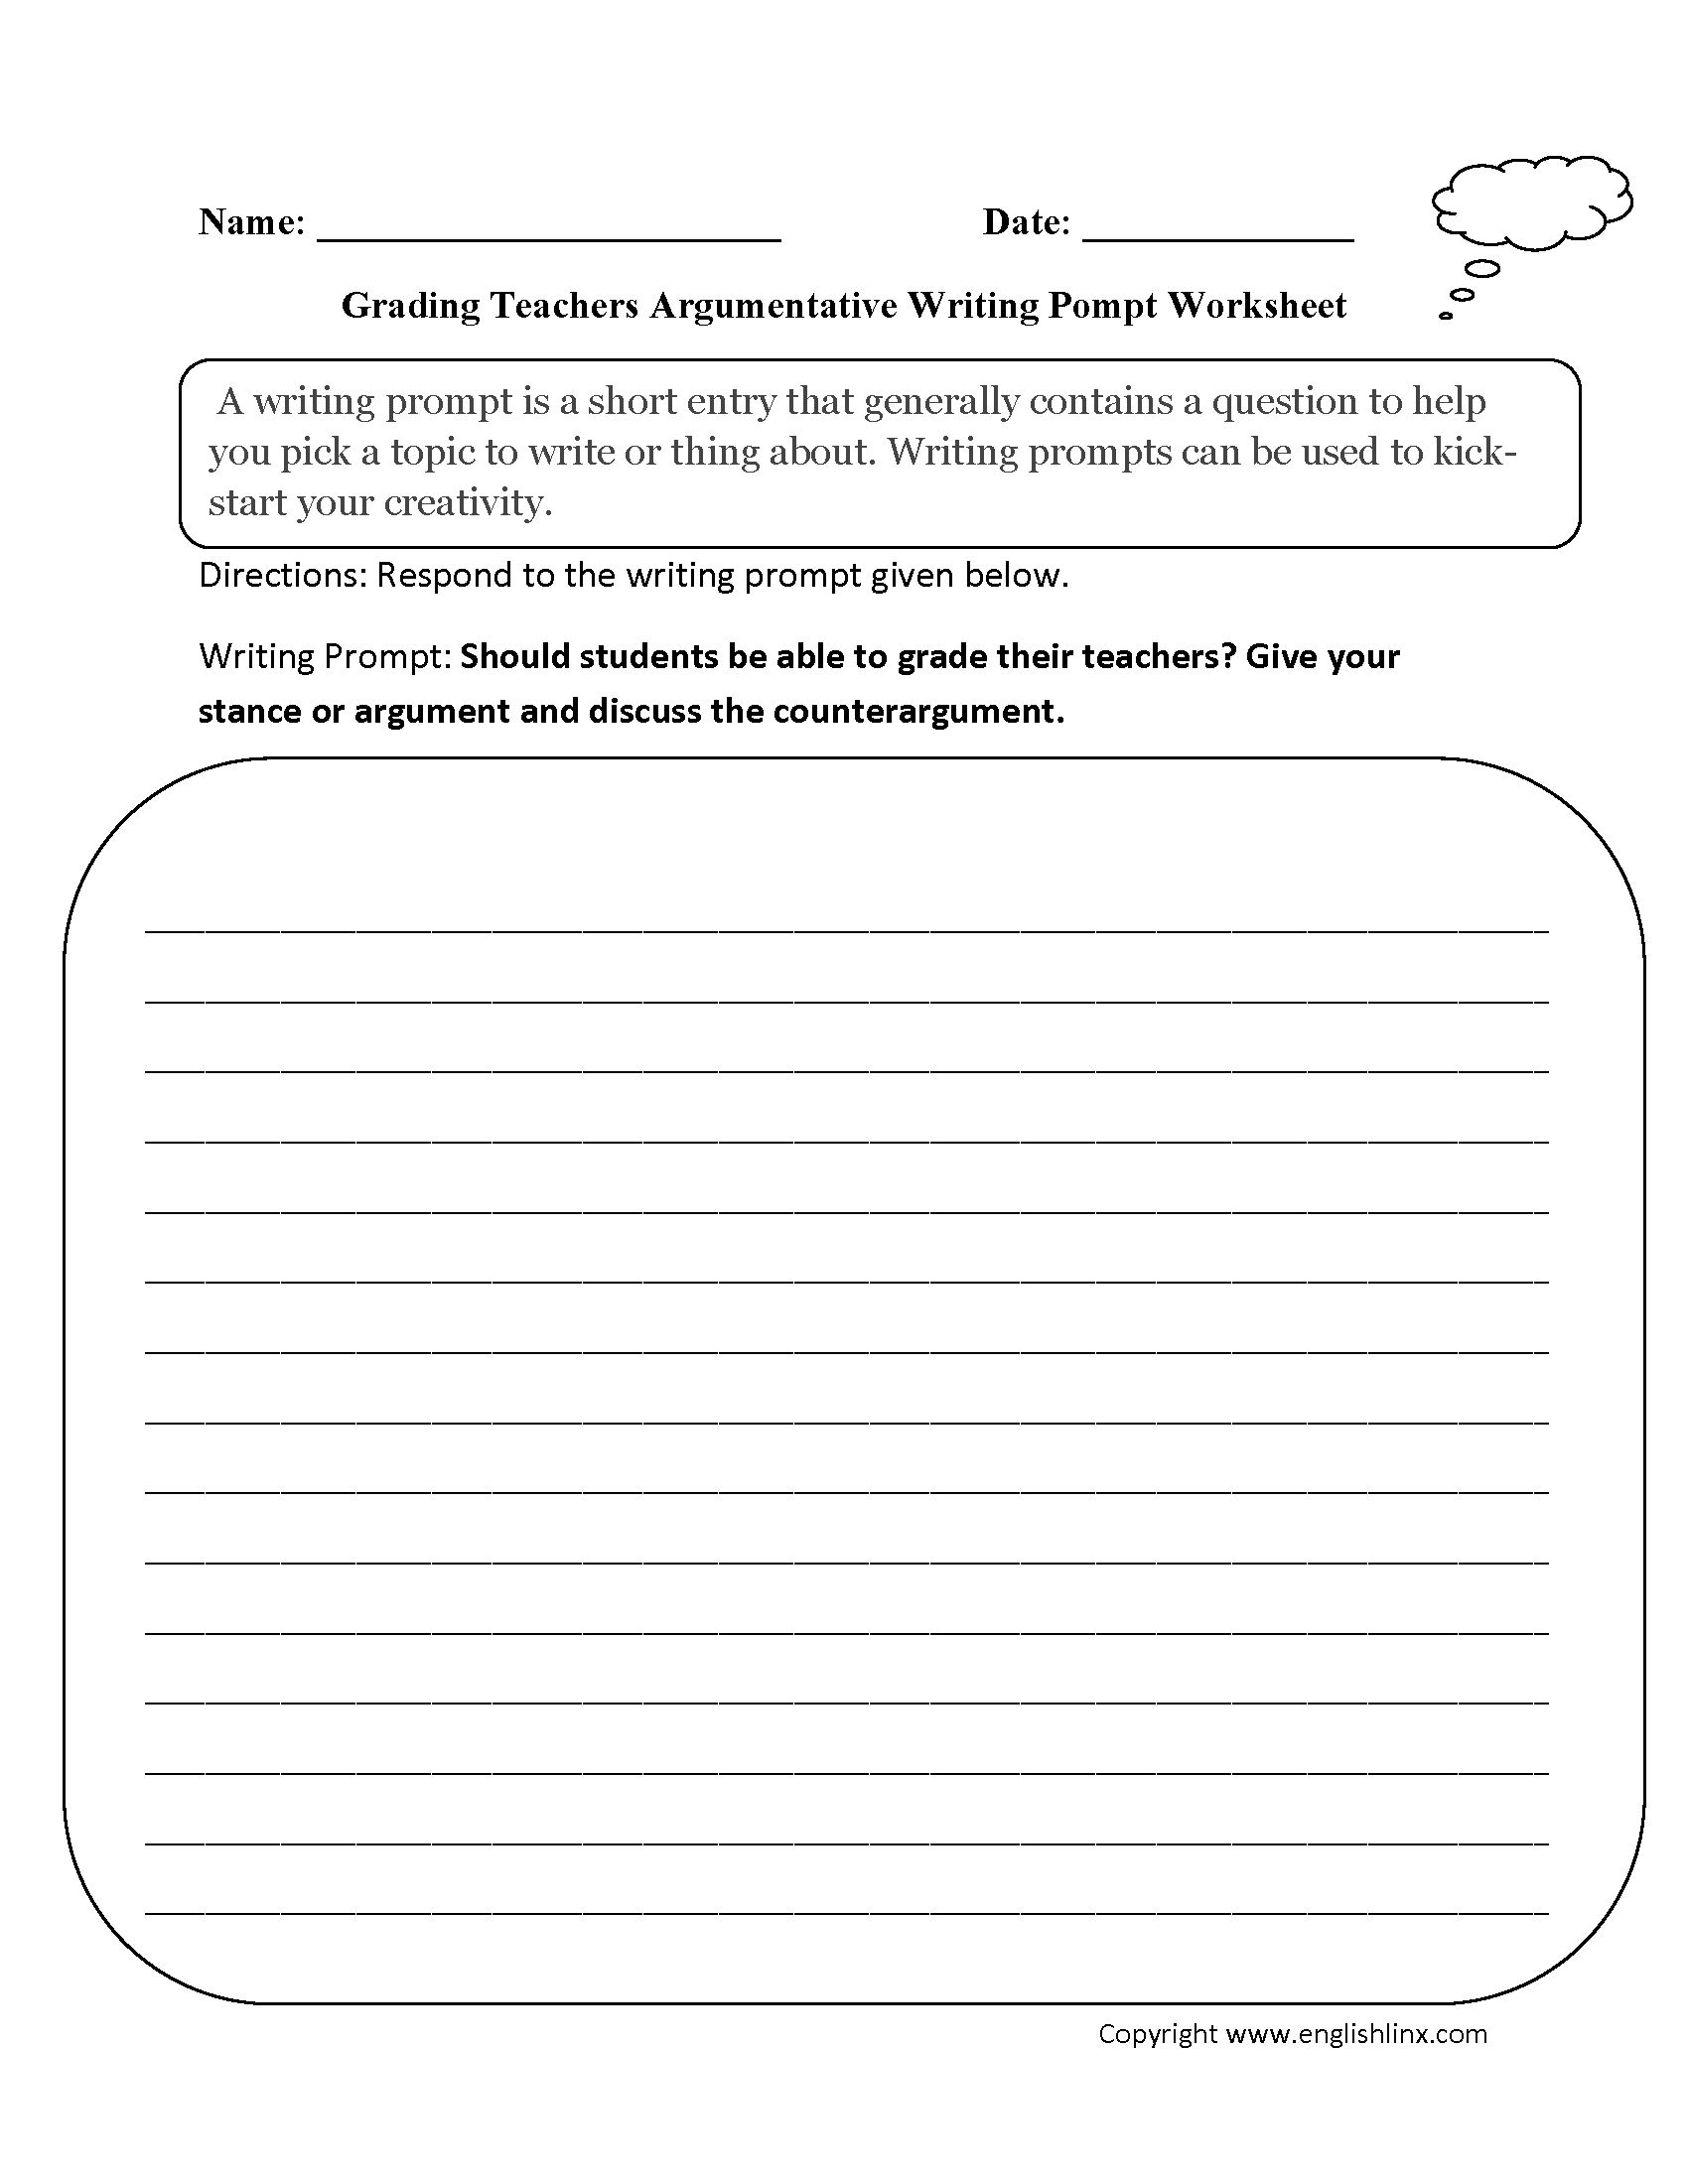 Writing Prompts Worksheets – Worksheets for Teachers